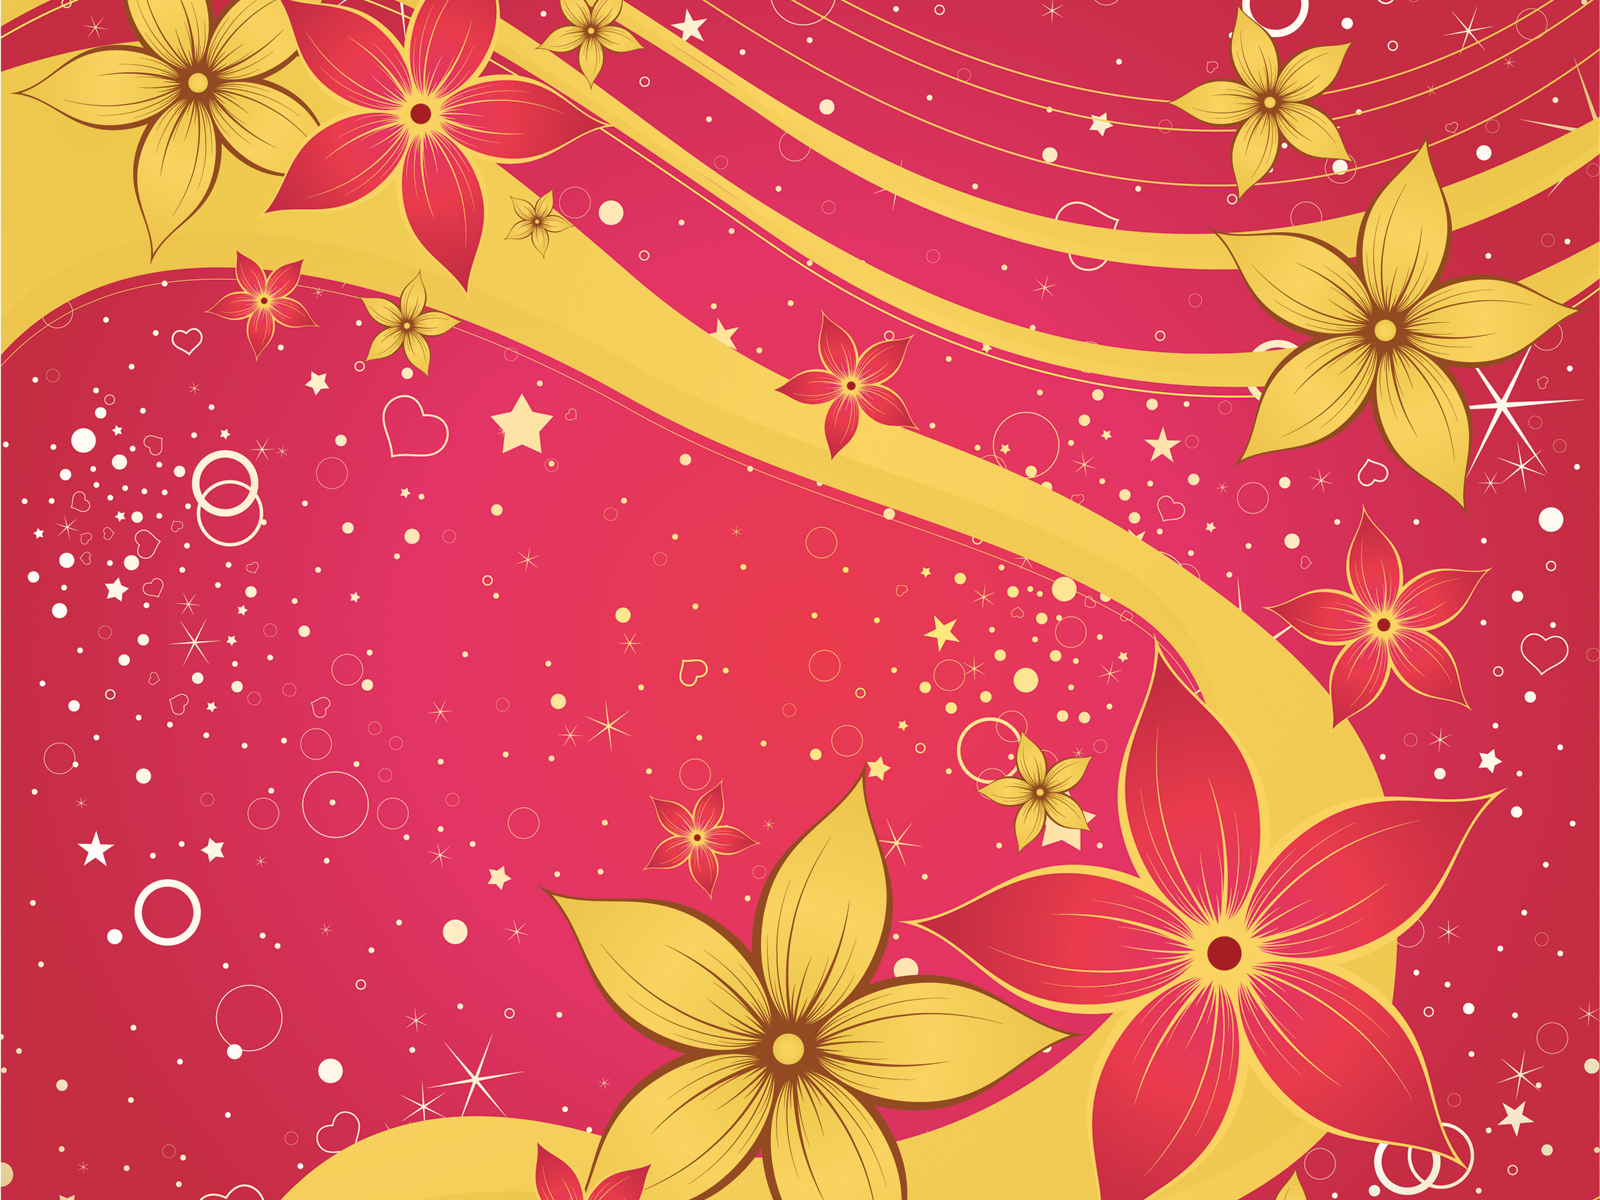 Red Silk Flower Backgrounds Design Flowers Templates Free Ppt